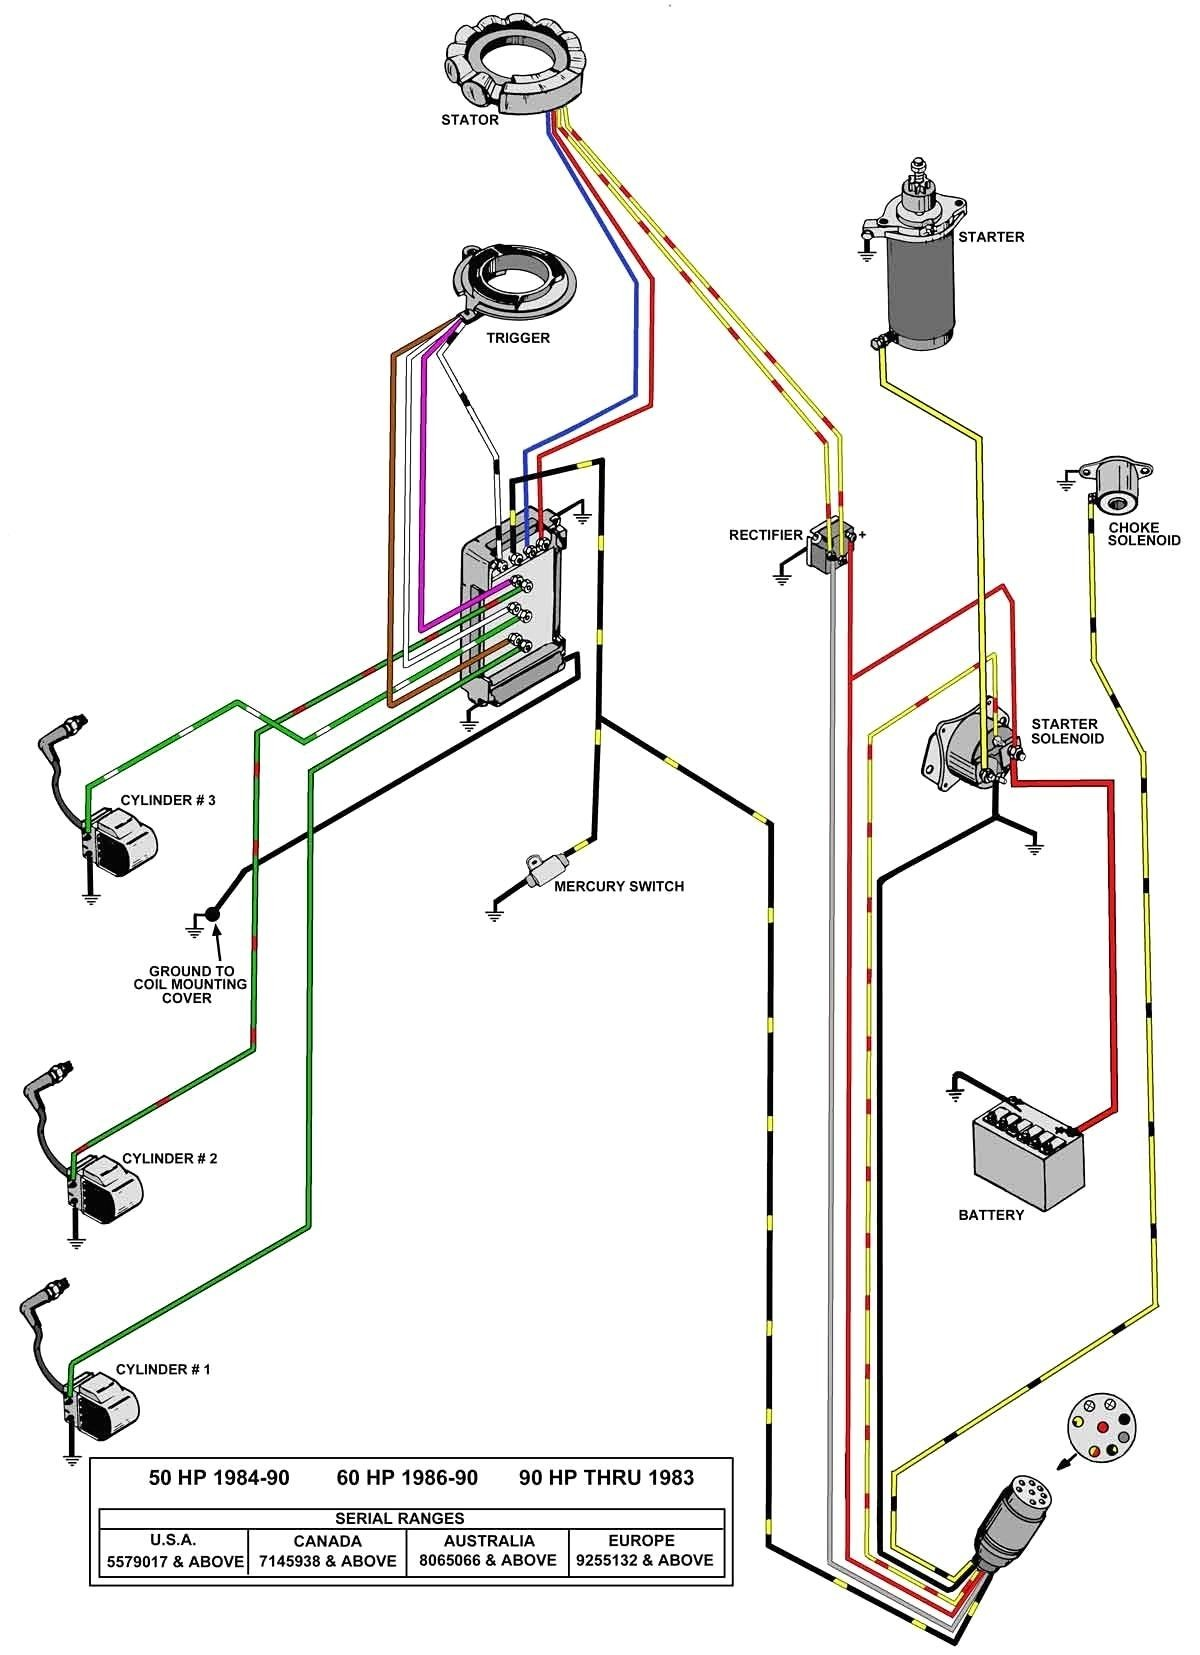 Key Switch Wire Diagram for A Mercury Outboaed with Chock 8608 Wiring Diagram for Mercury Outboard Of Key Switch Wire Diagram for A Mercury Outboaed with Chock